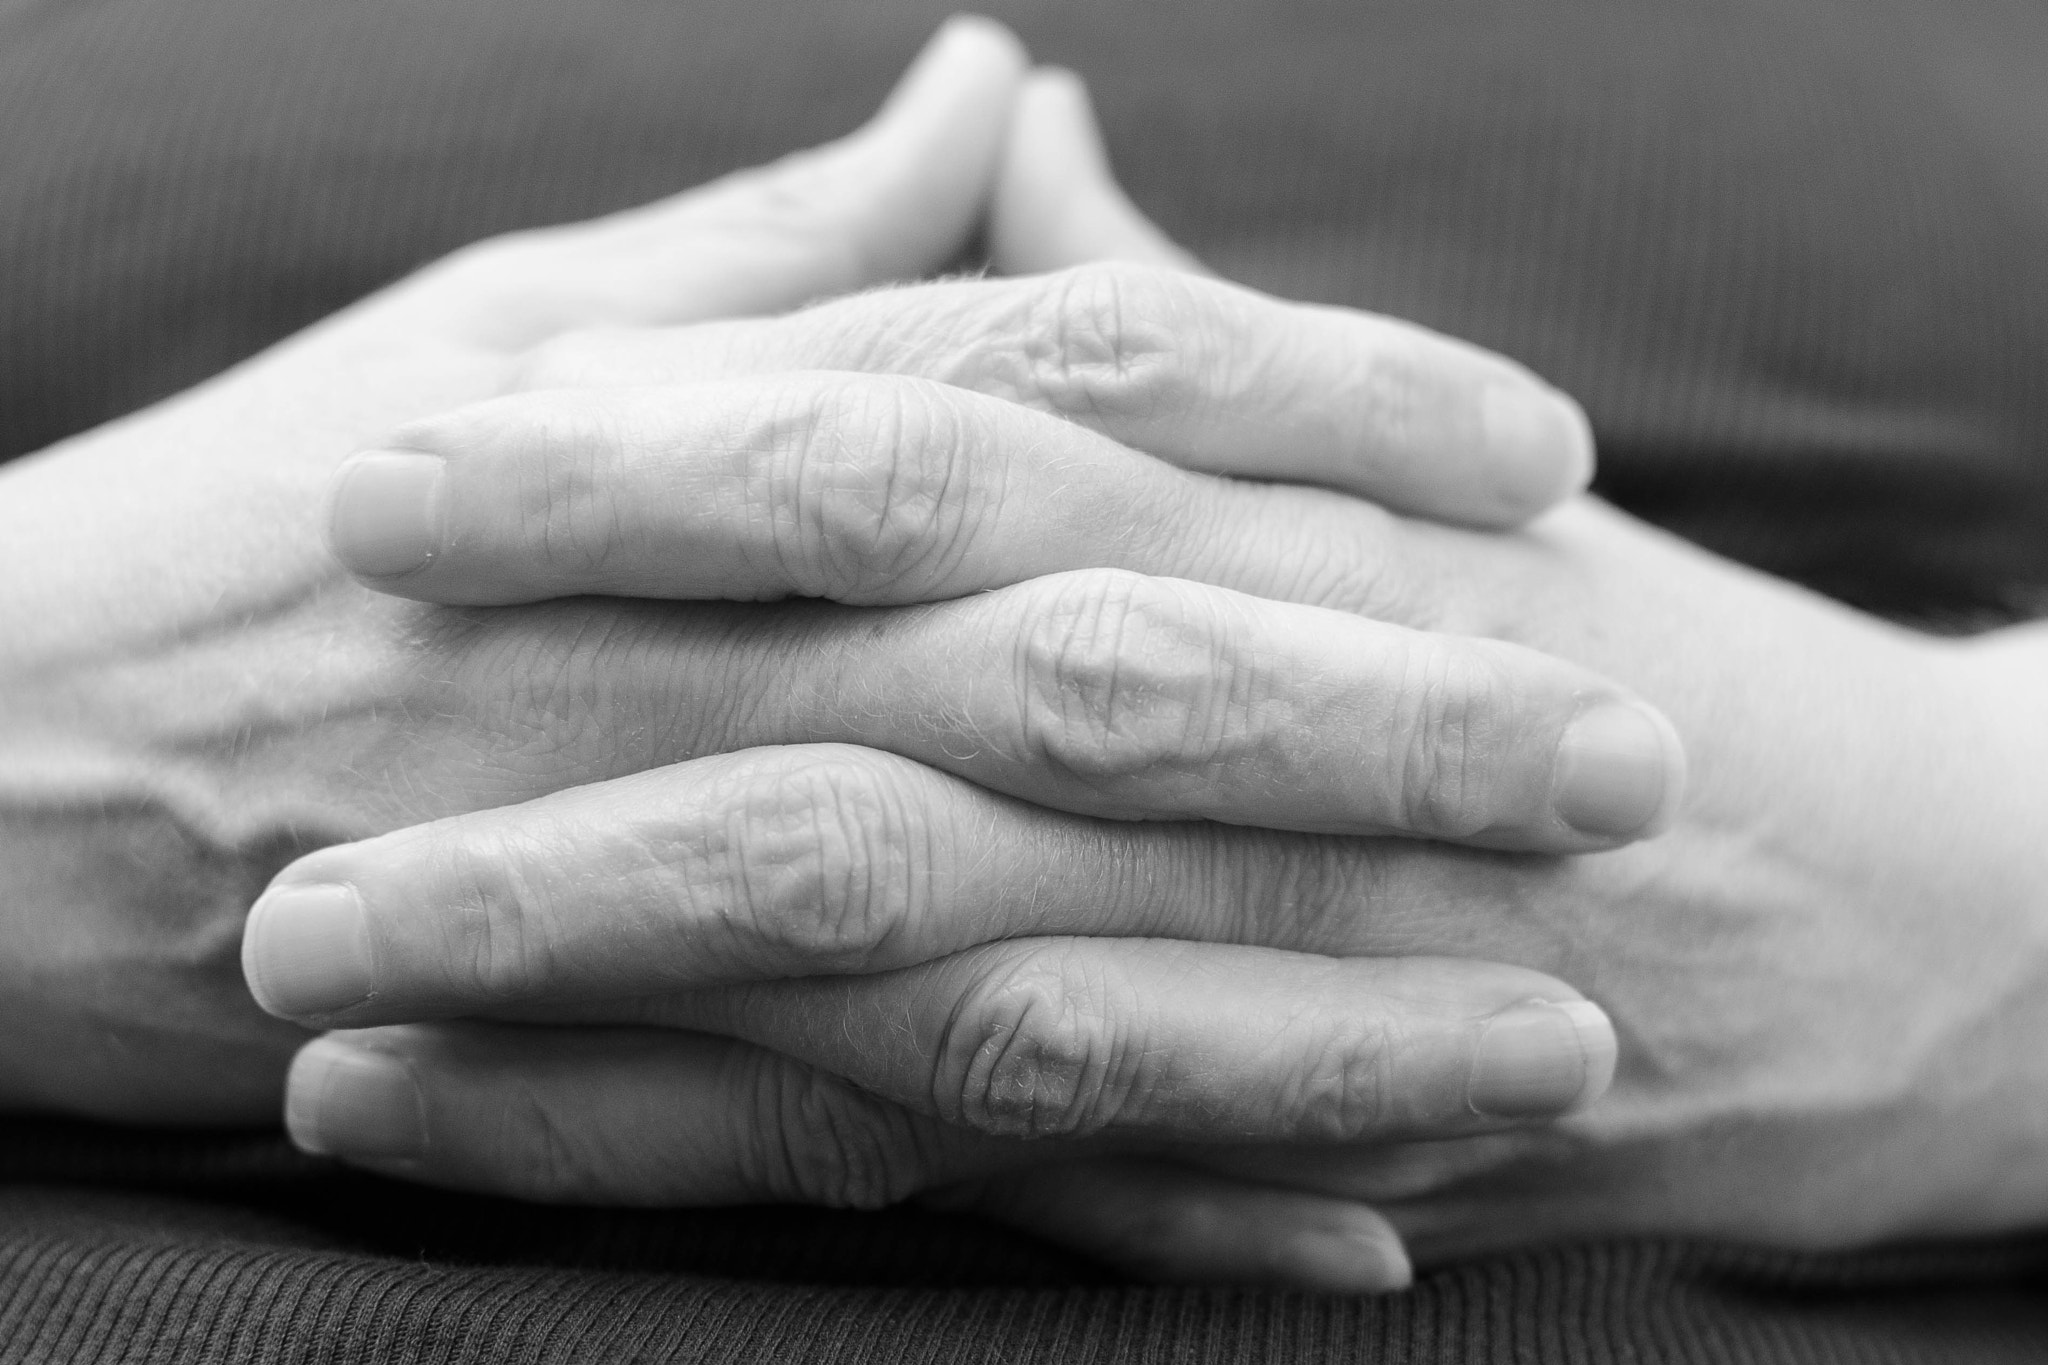 Photograph Molly's Hands by Charles  Olsen on 500px